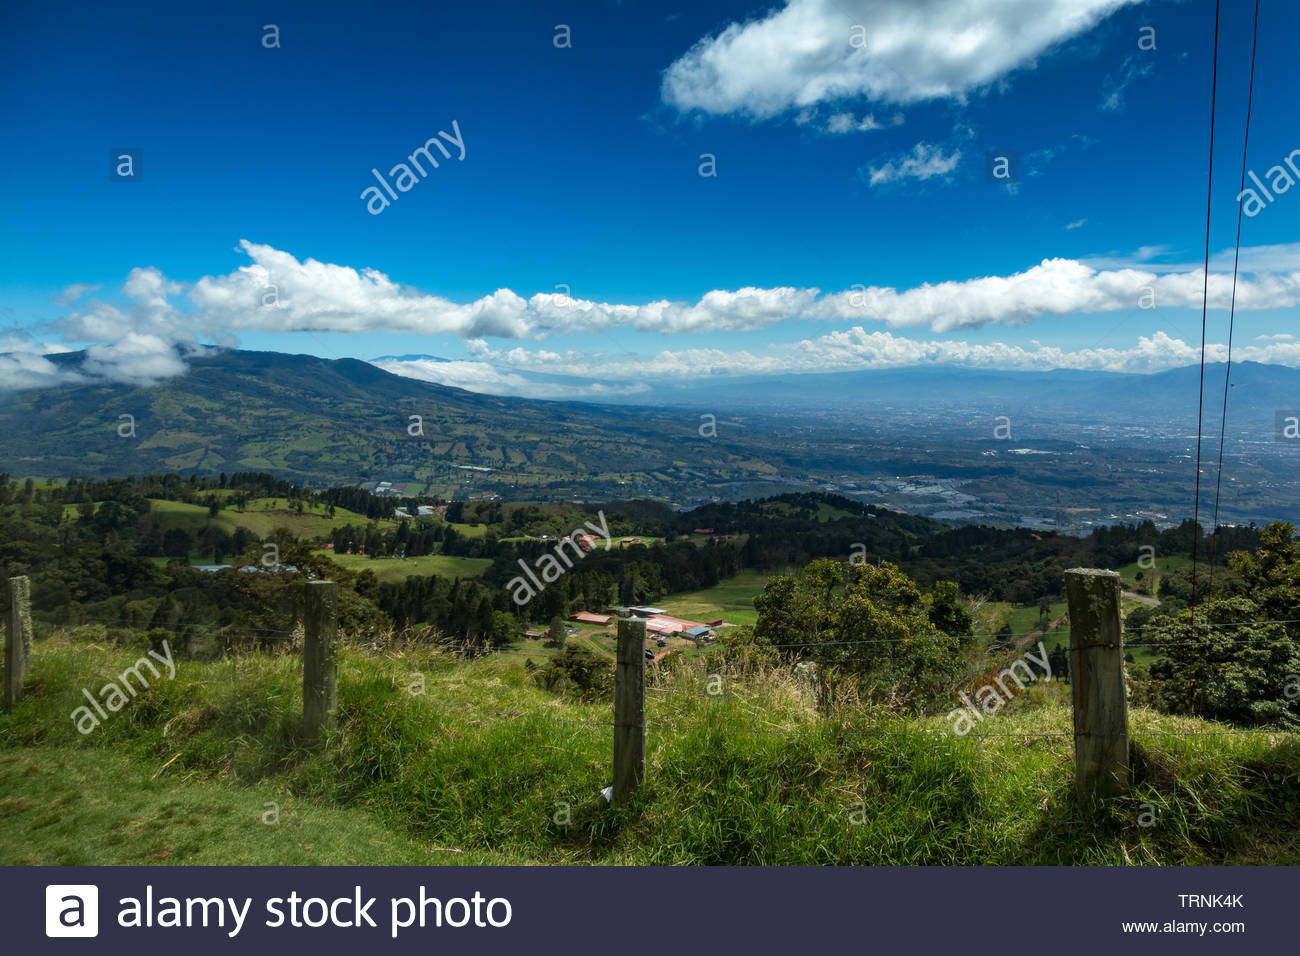 The crater and the lake of the Poas volcano in Costa Rica - Stock Image